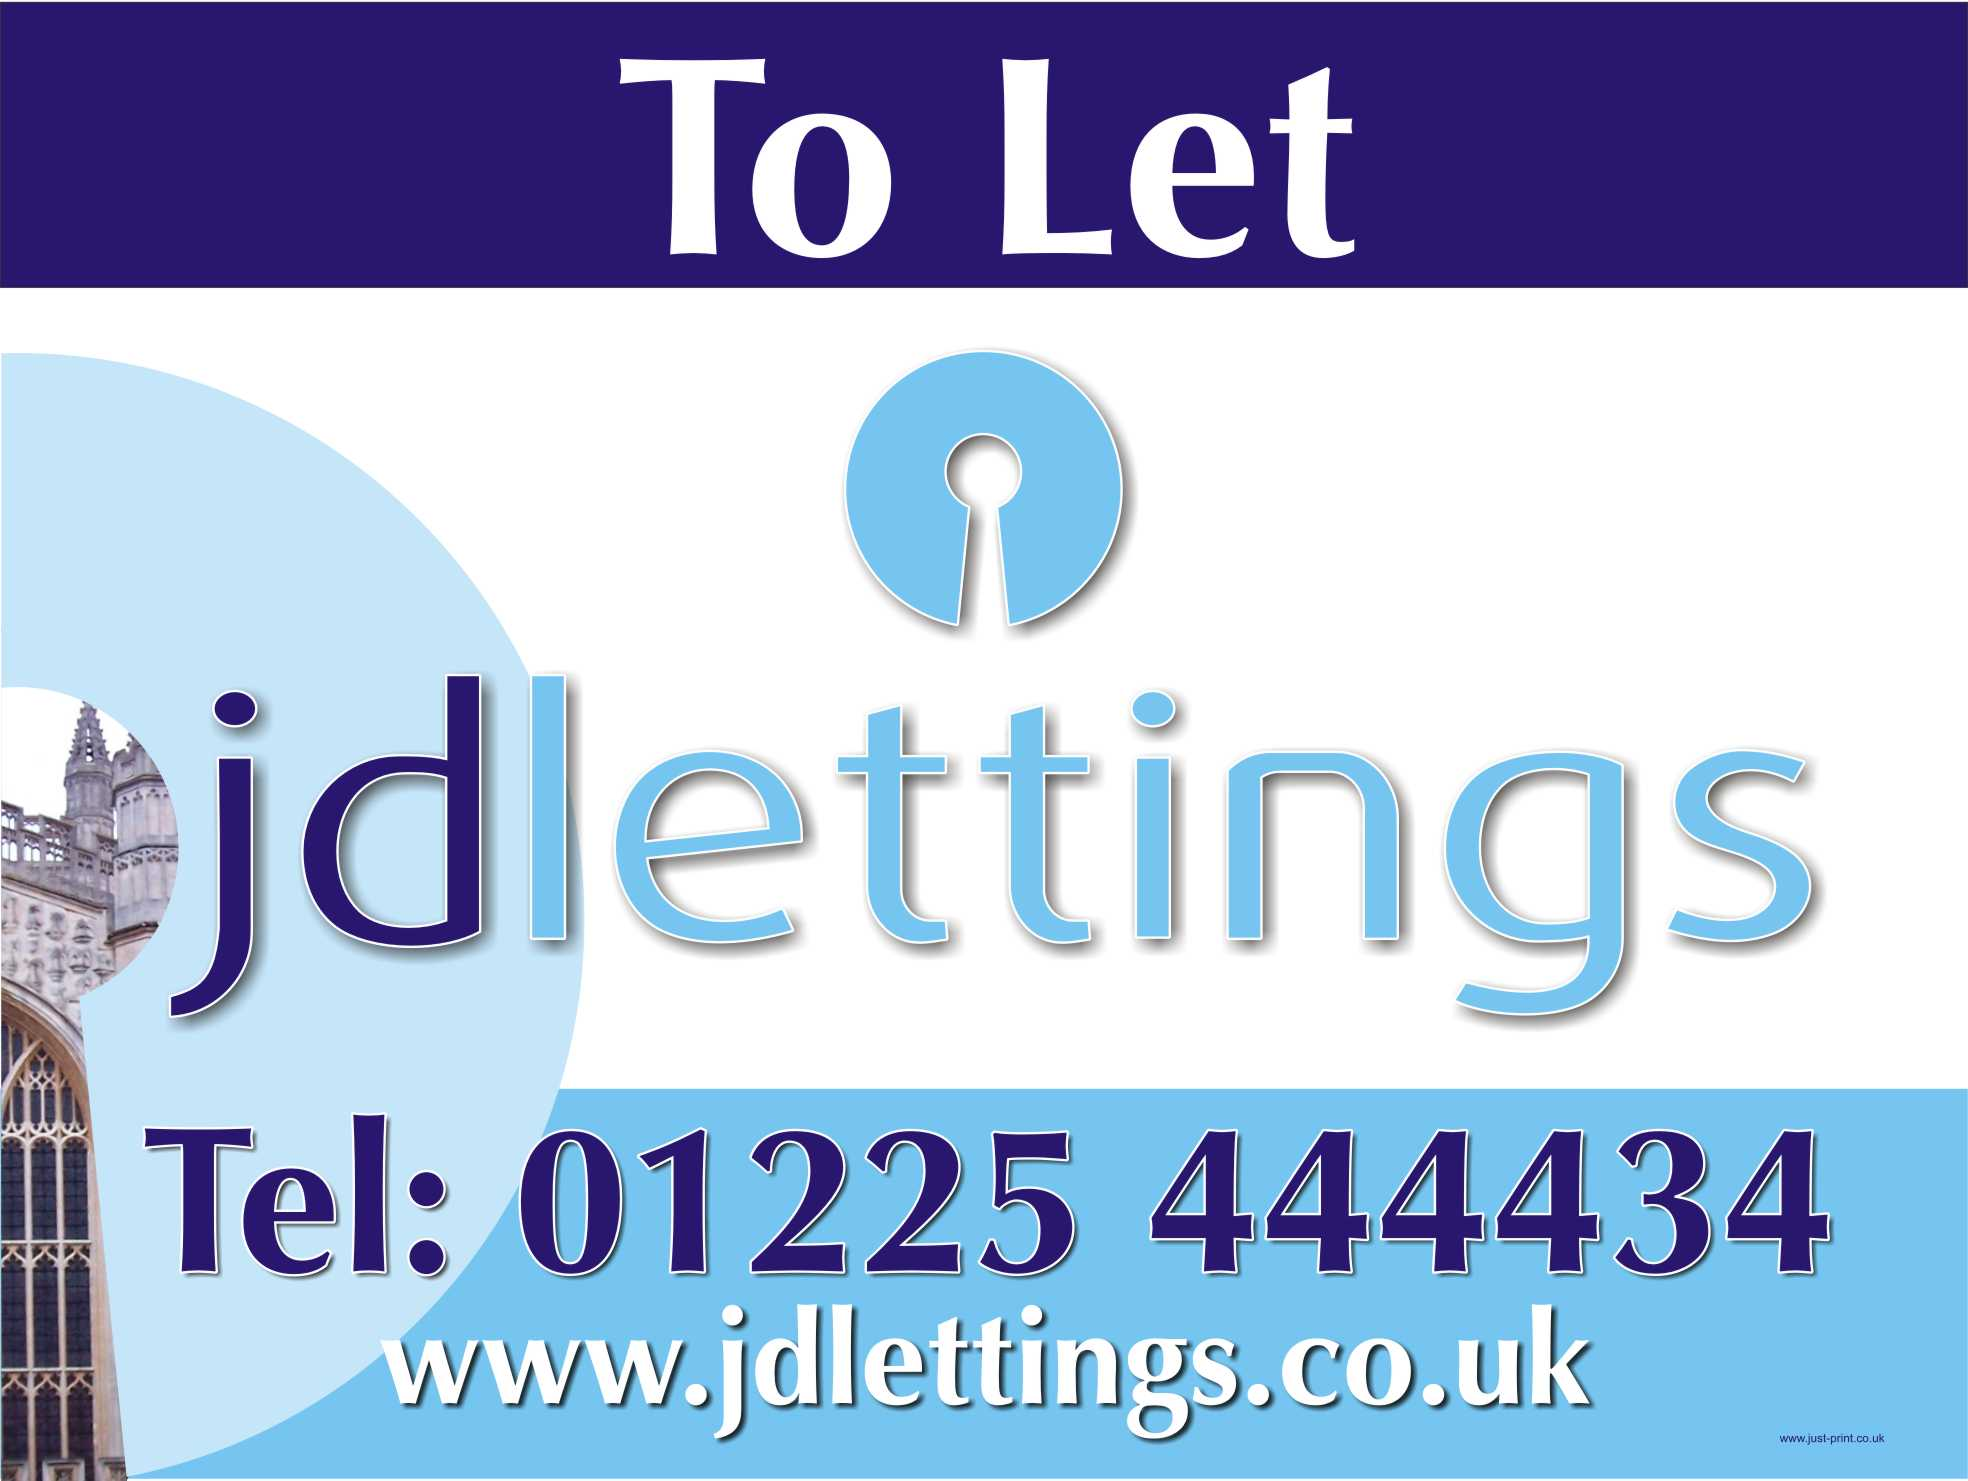 estateagentboardshop-jd-letting